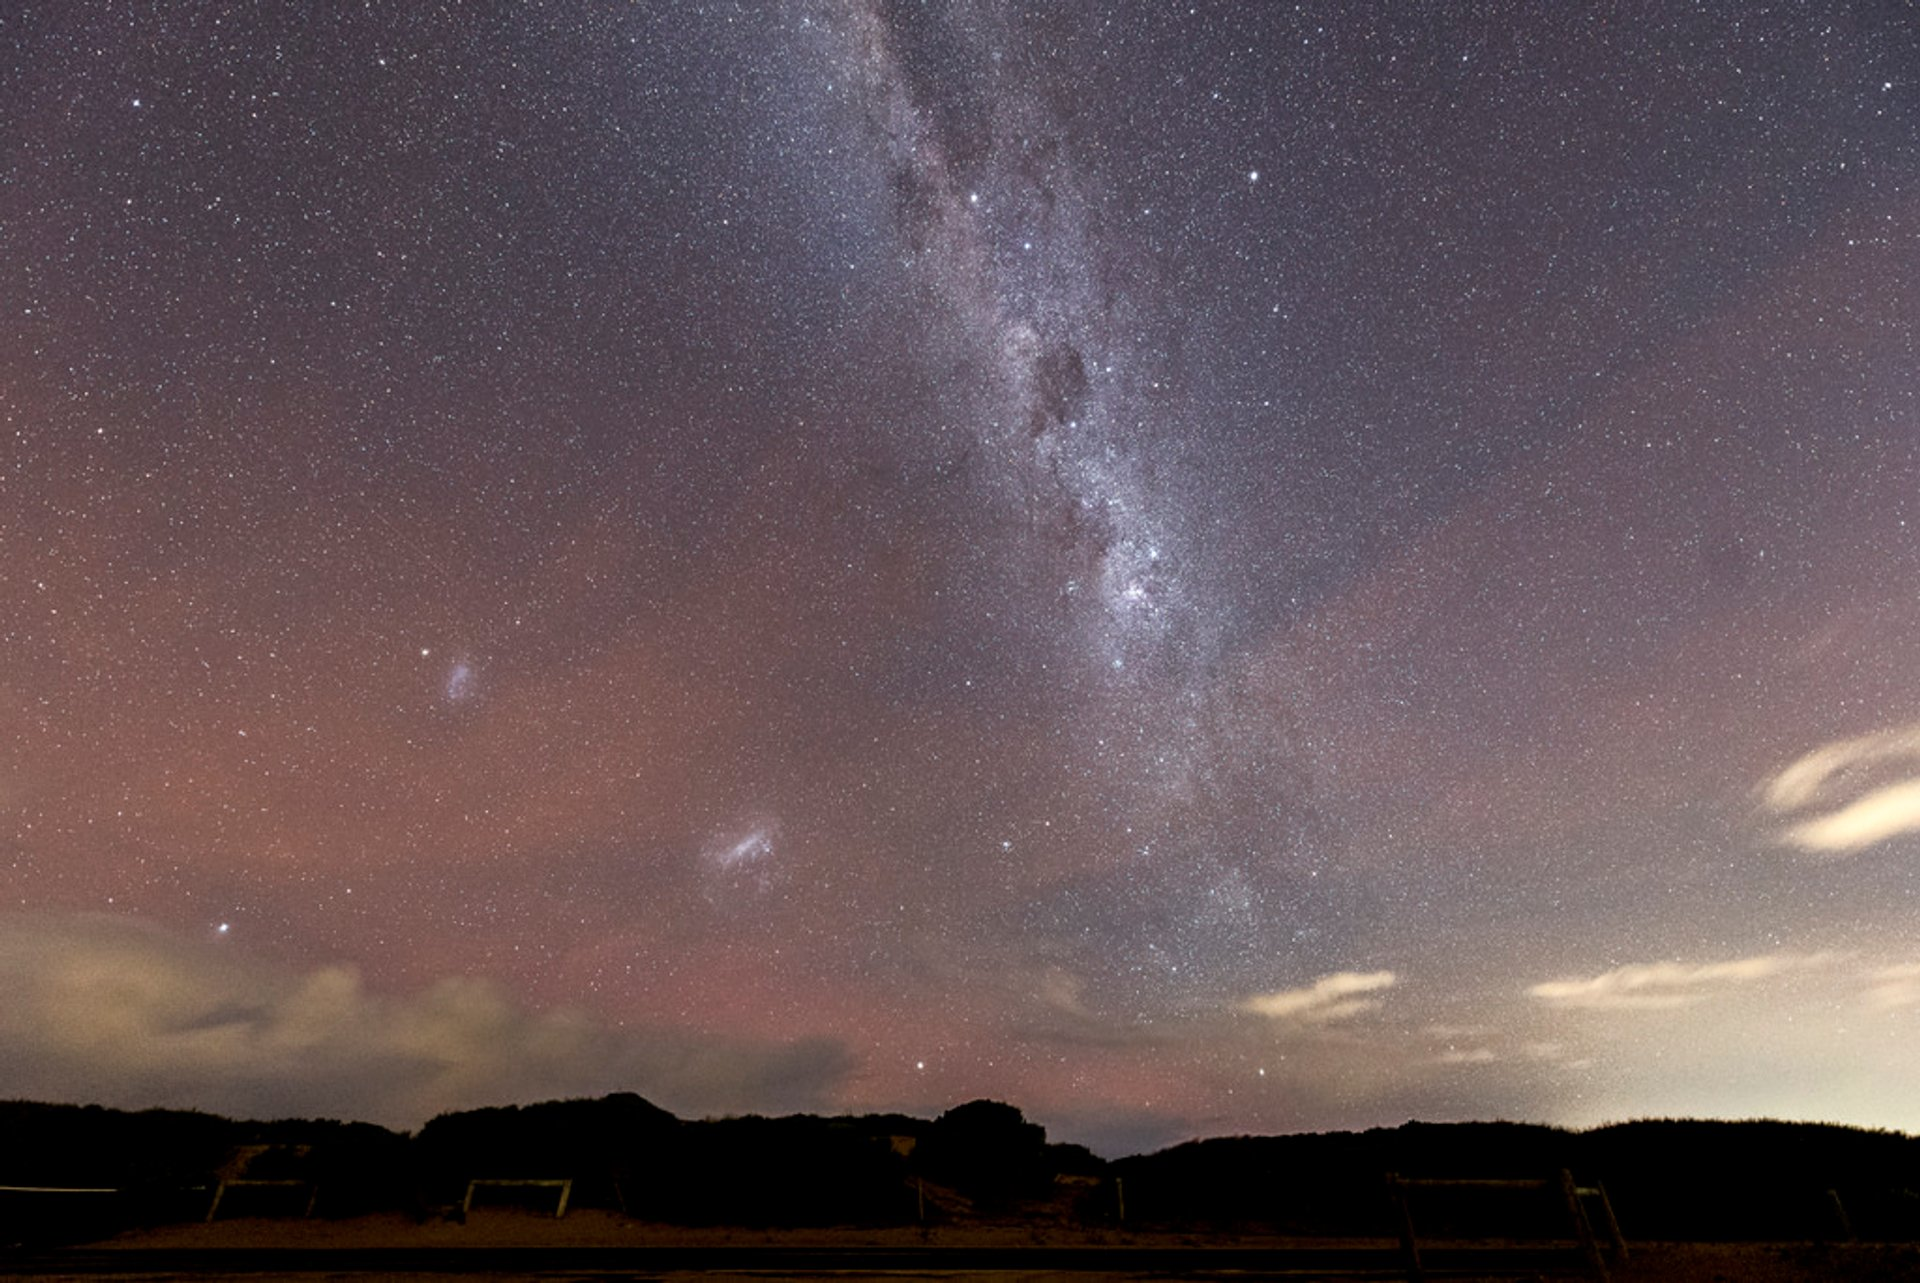 Milky Way and possibly the glow of aurora australis in Connewarre 2020